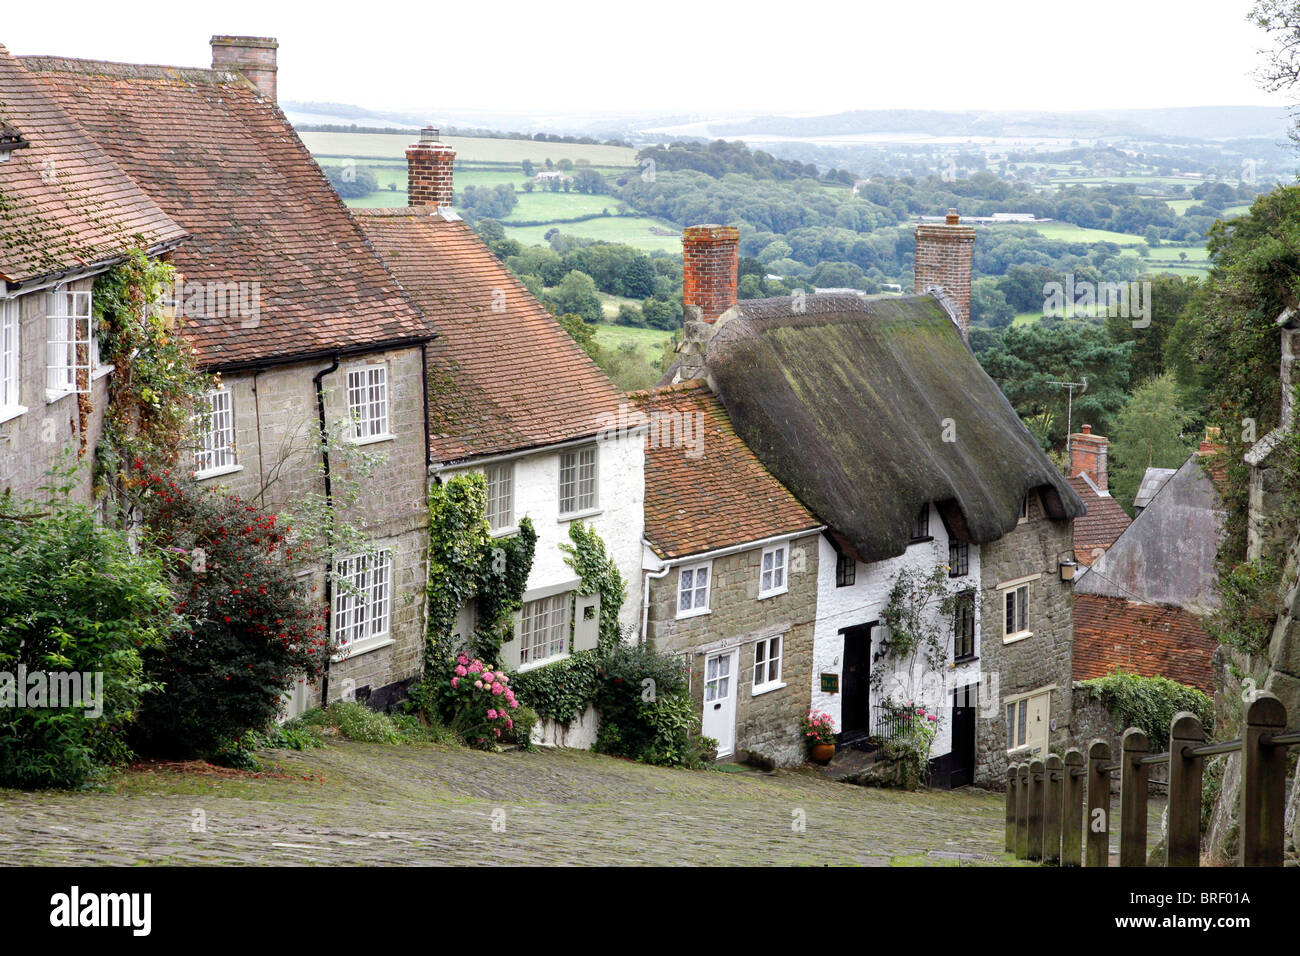 Gold Hill, Shaftesbury, Dorset, South England, Great Britain, Europe - Stock Image